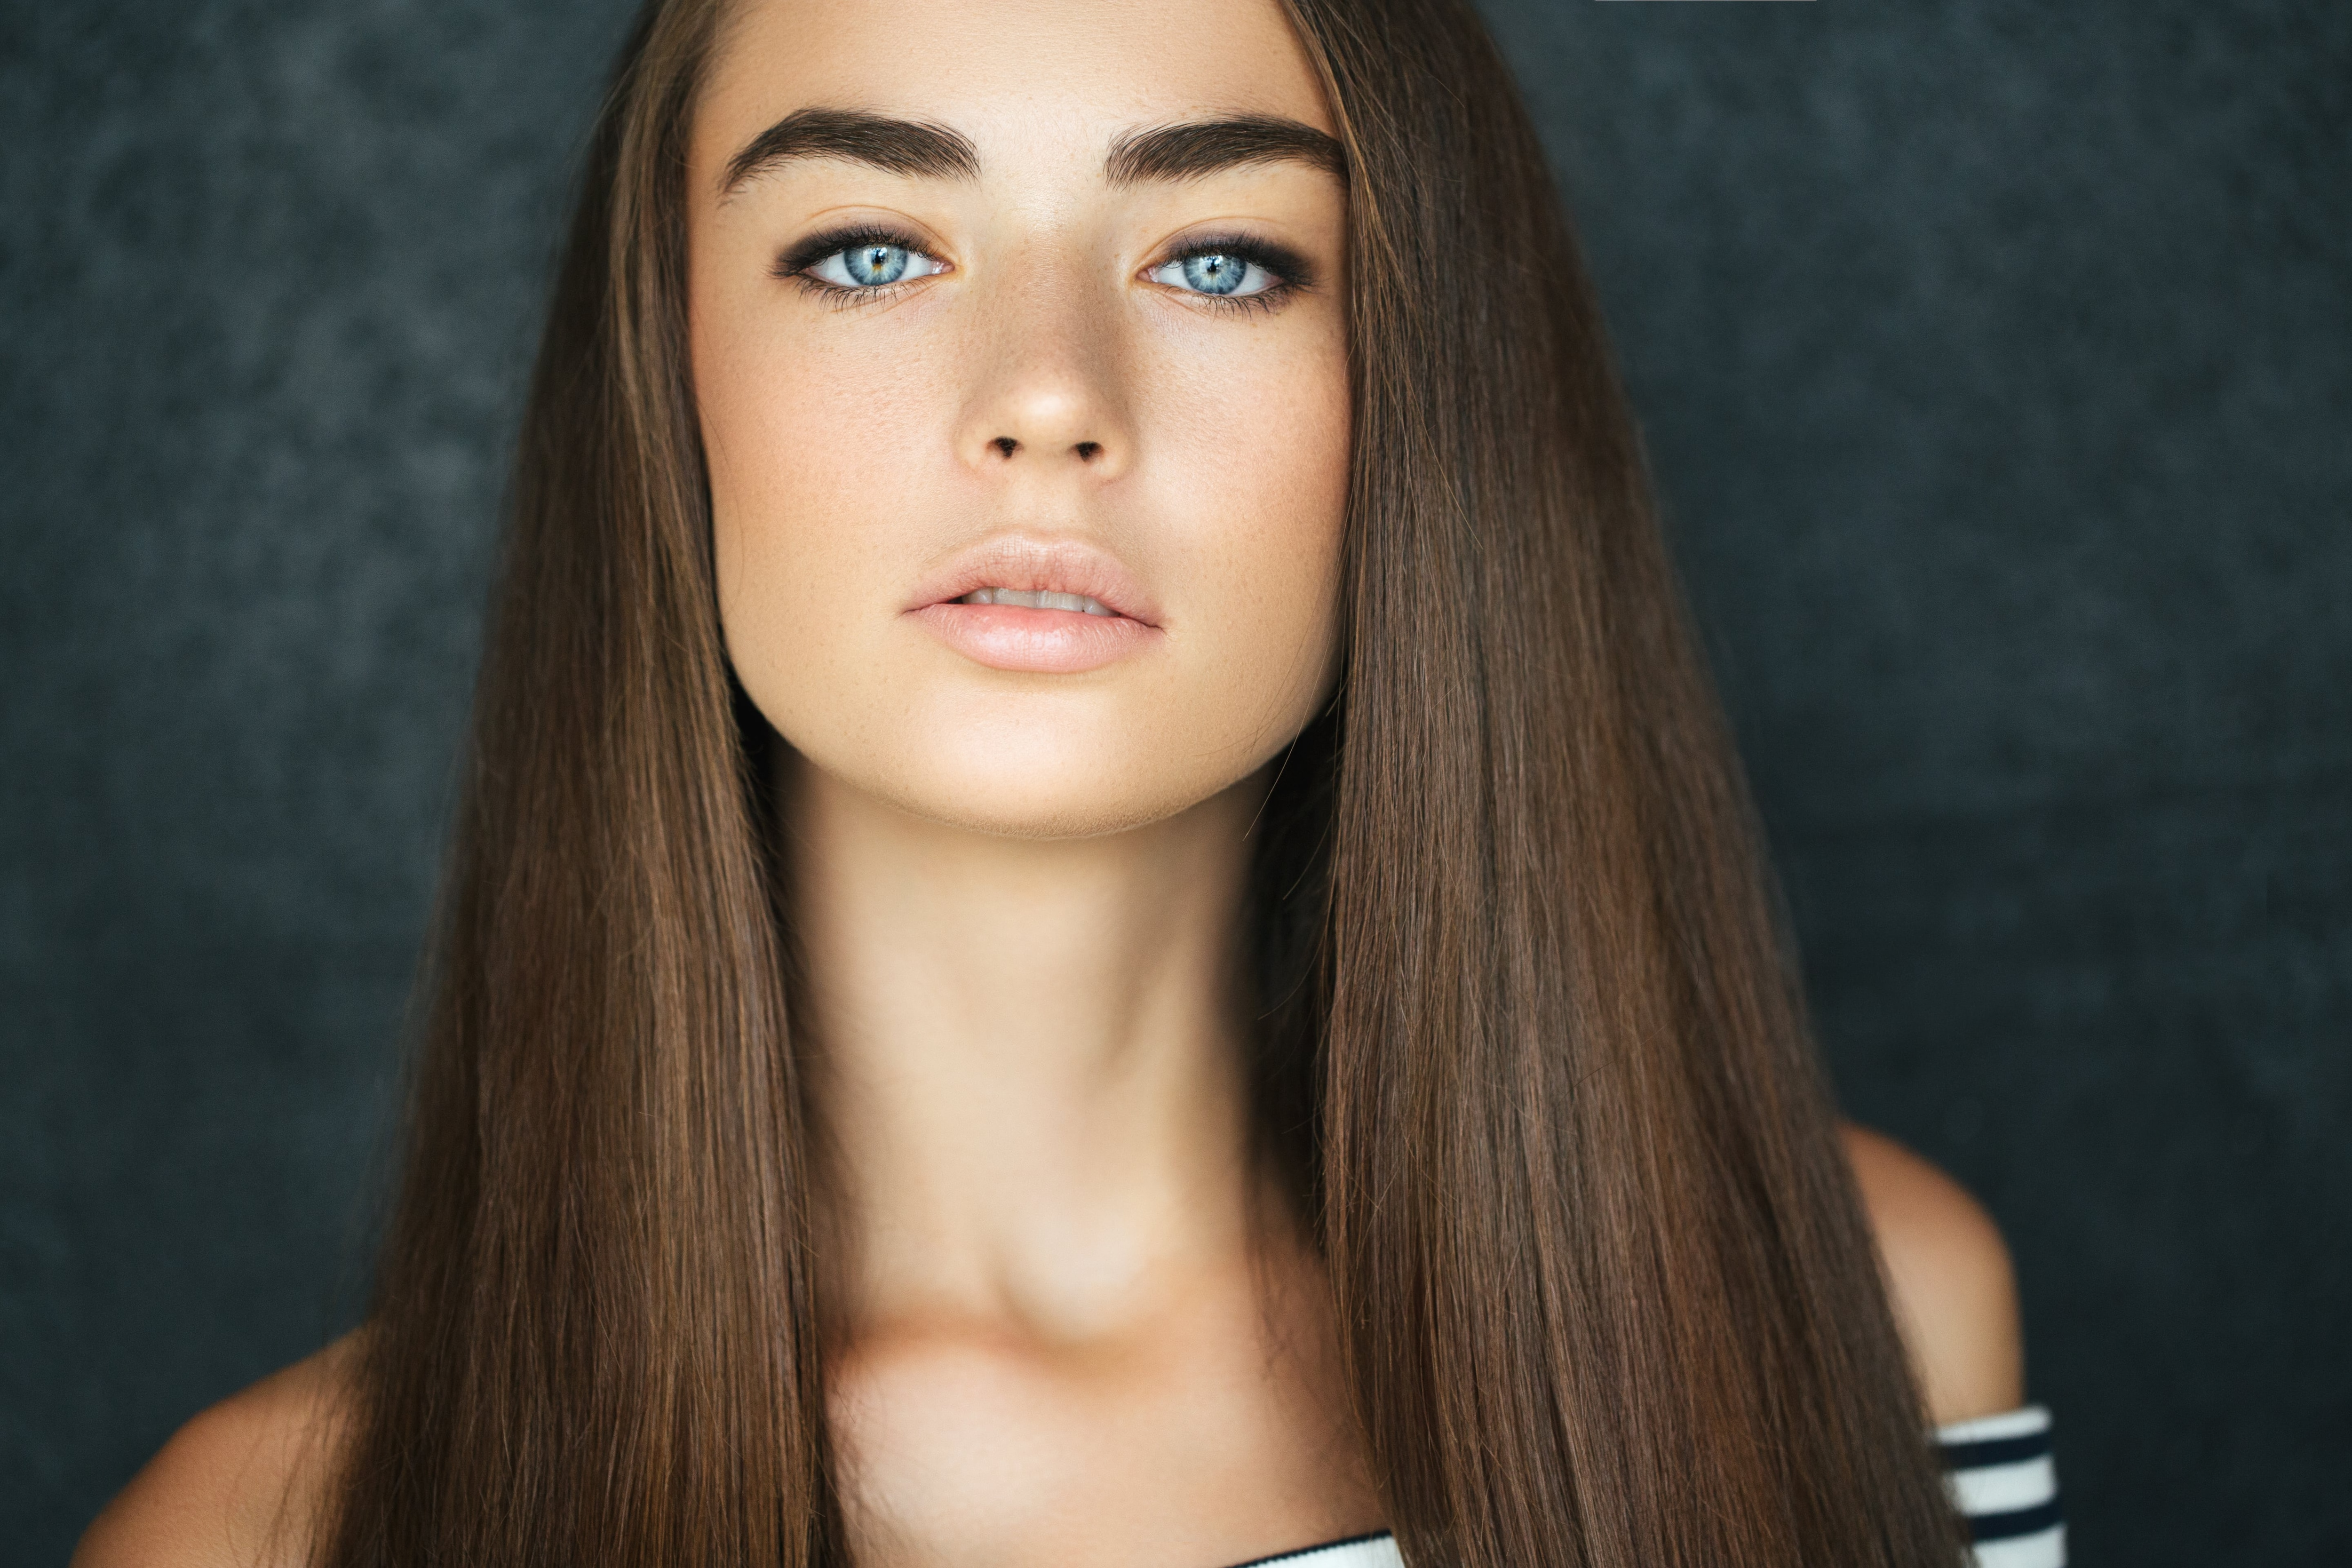 keratin hair treatment do's and don'ts brunette woman with straight hair